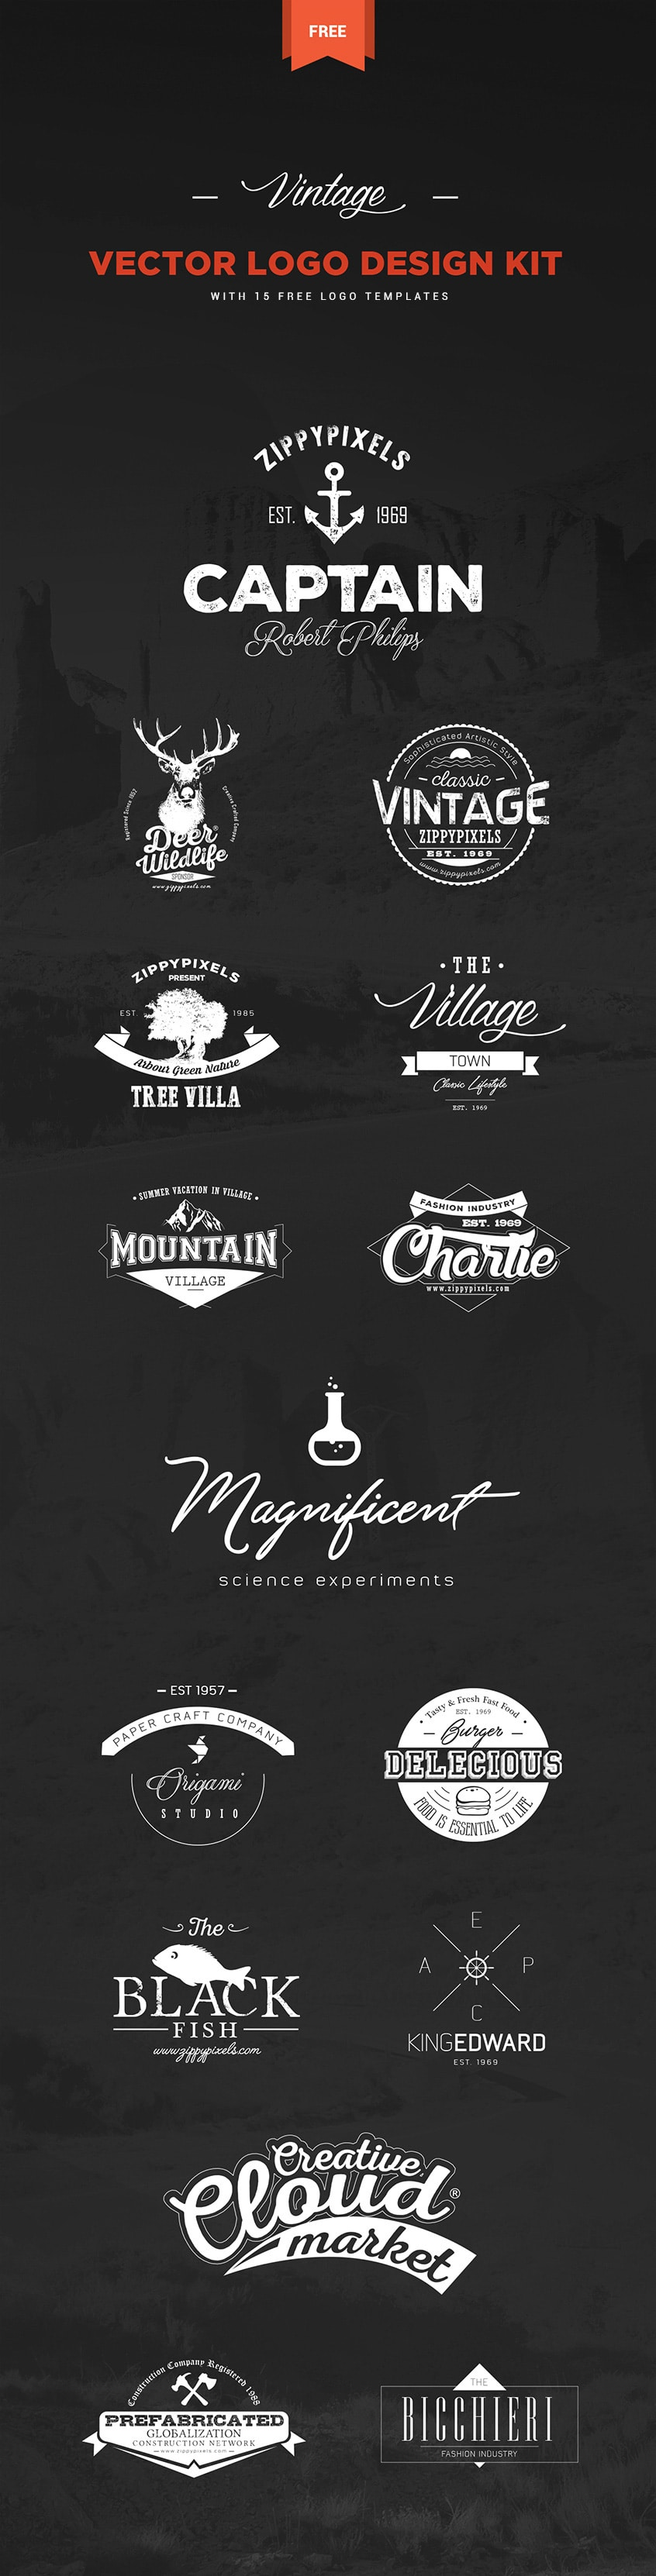 Vintage Vector Logo Design Kit